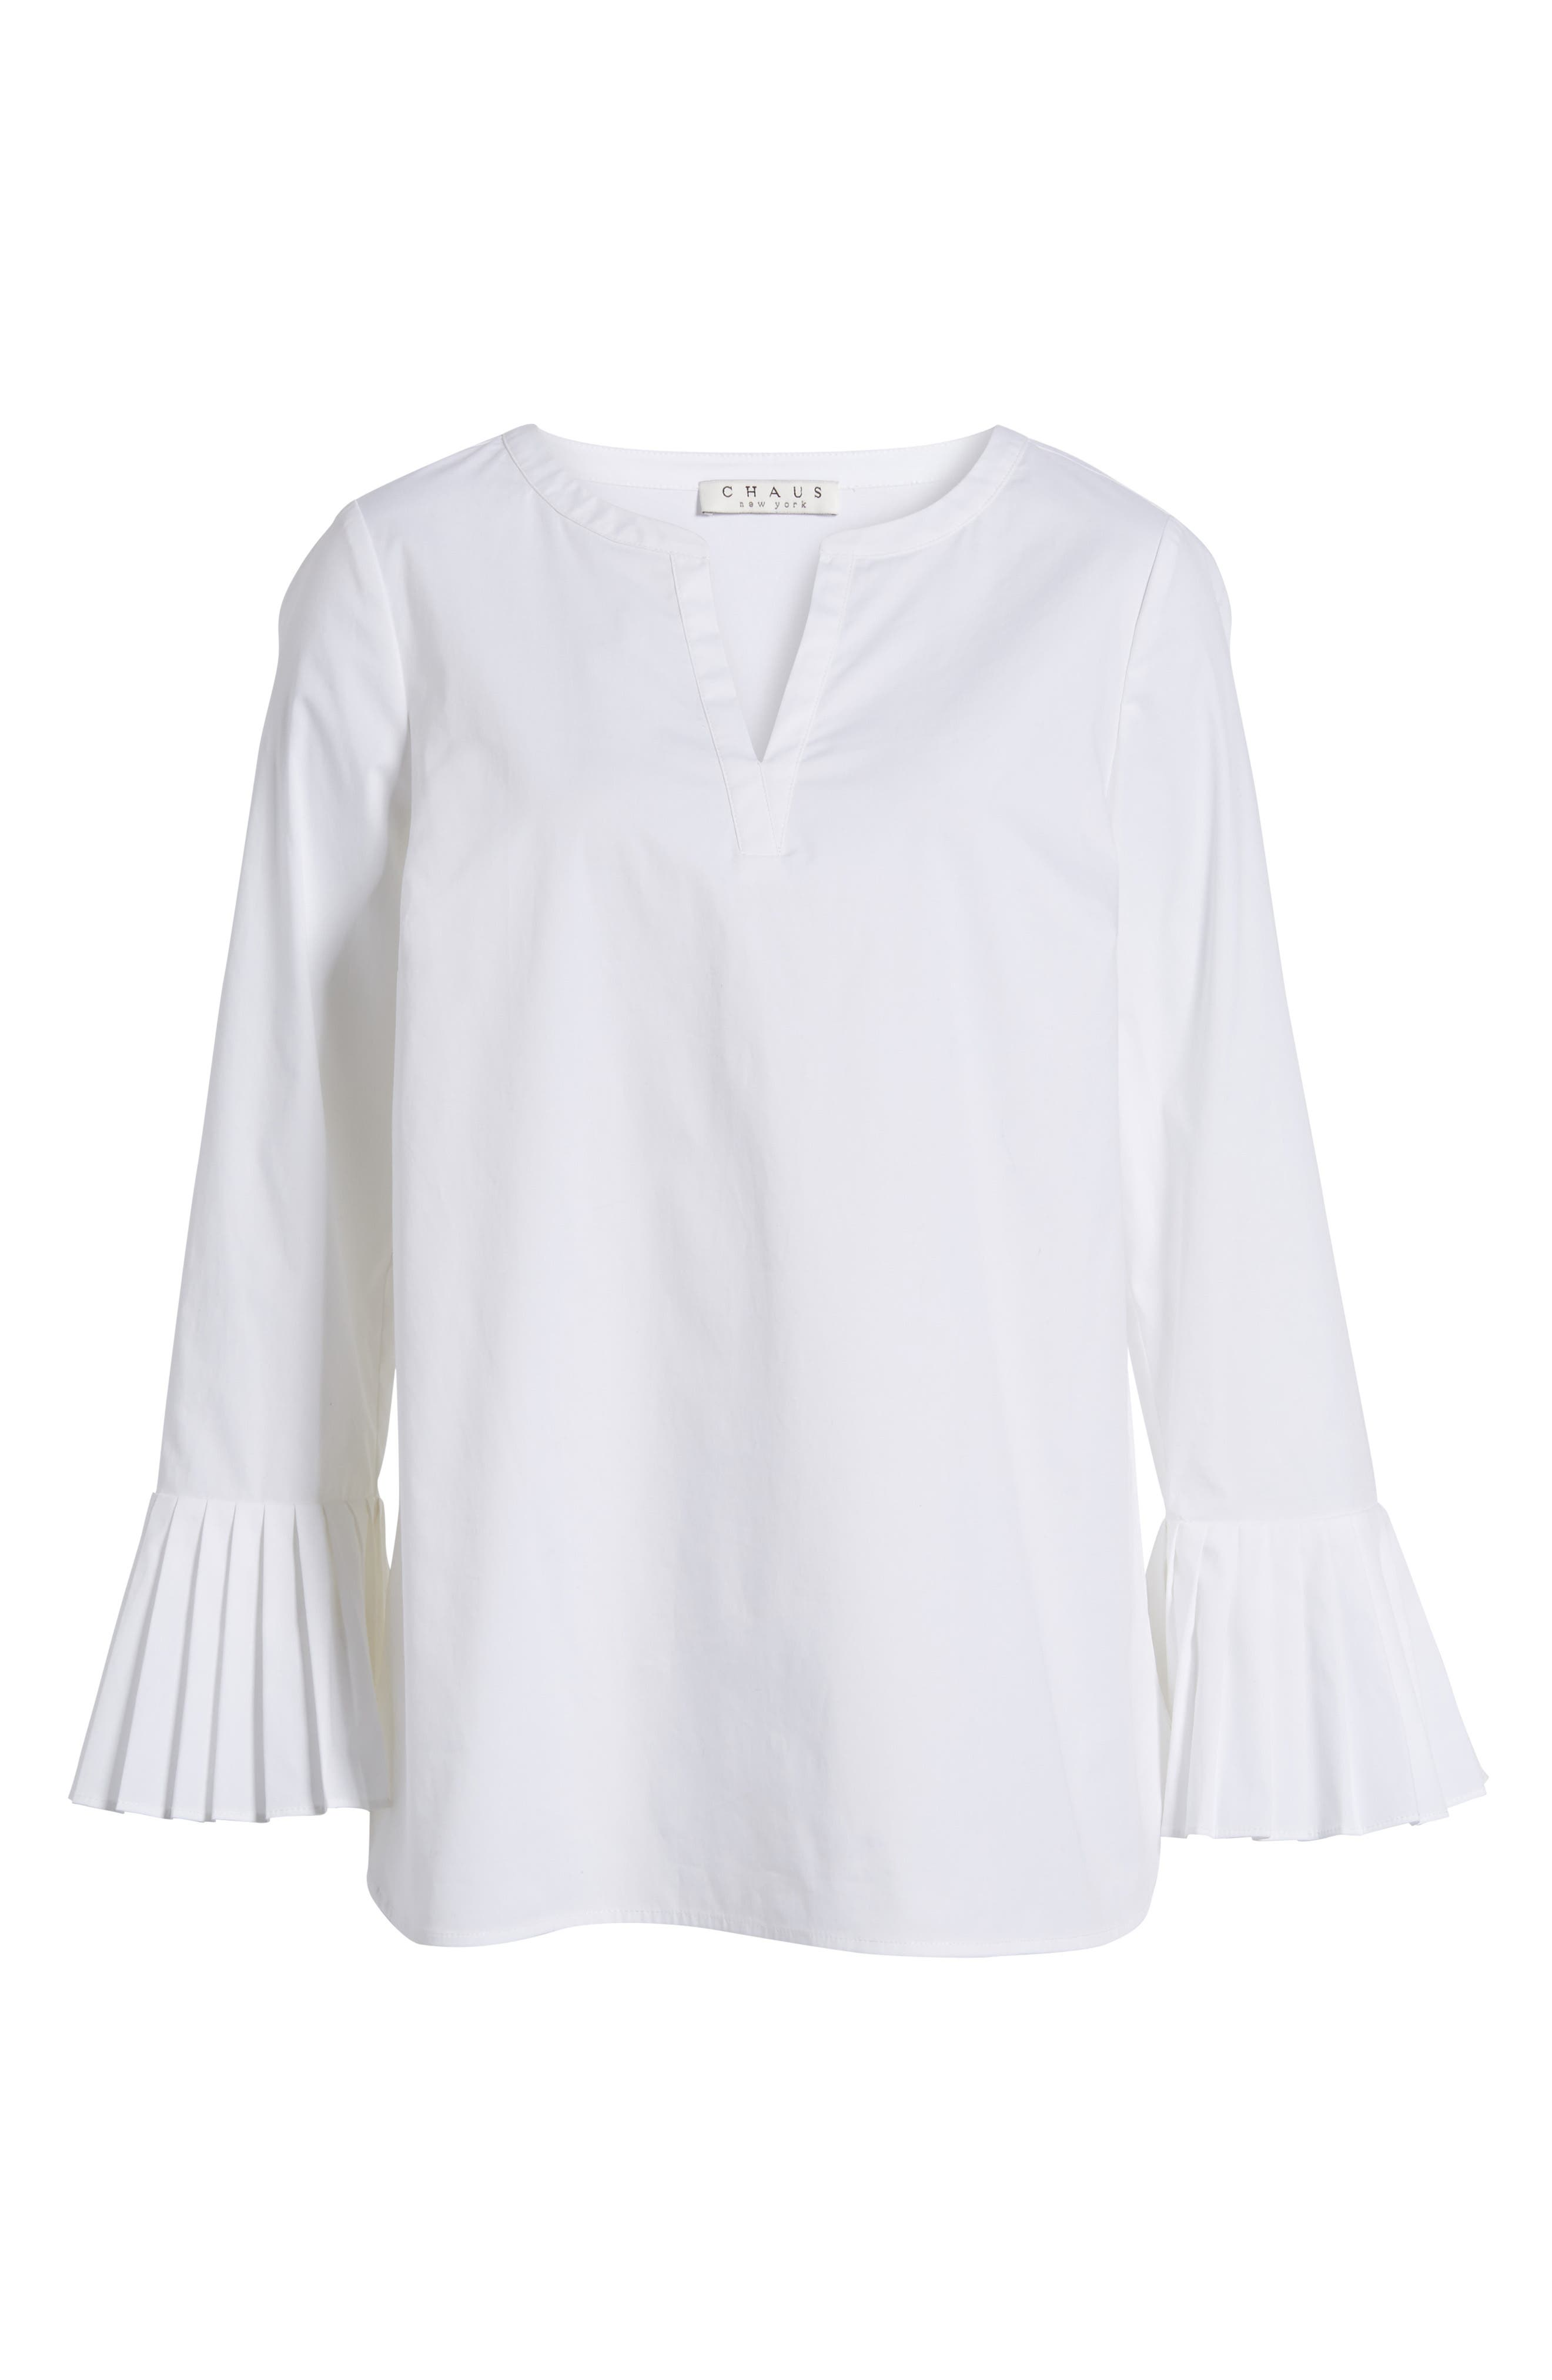 Pleat Sleeve Shirttail Blouse,                             Alternate thumbnail 6, color,                             145